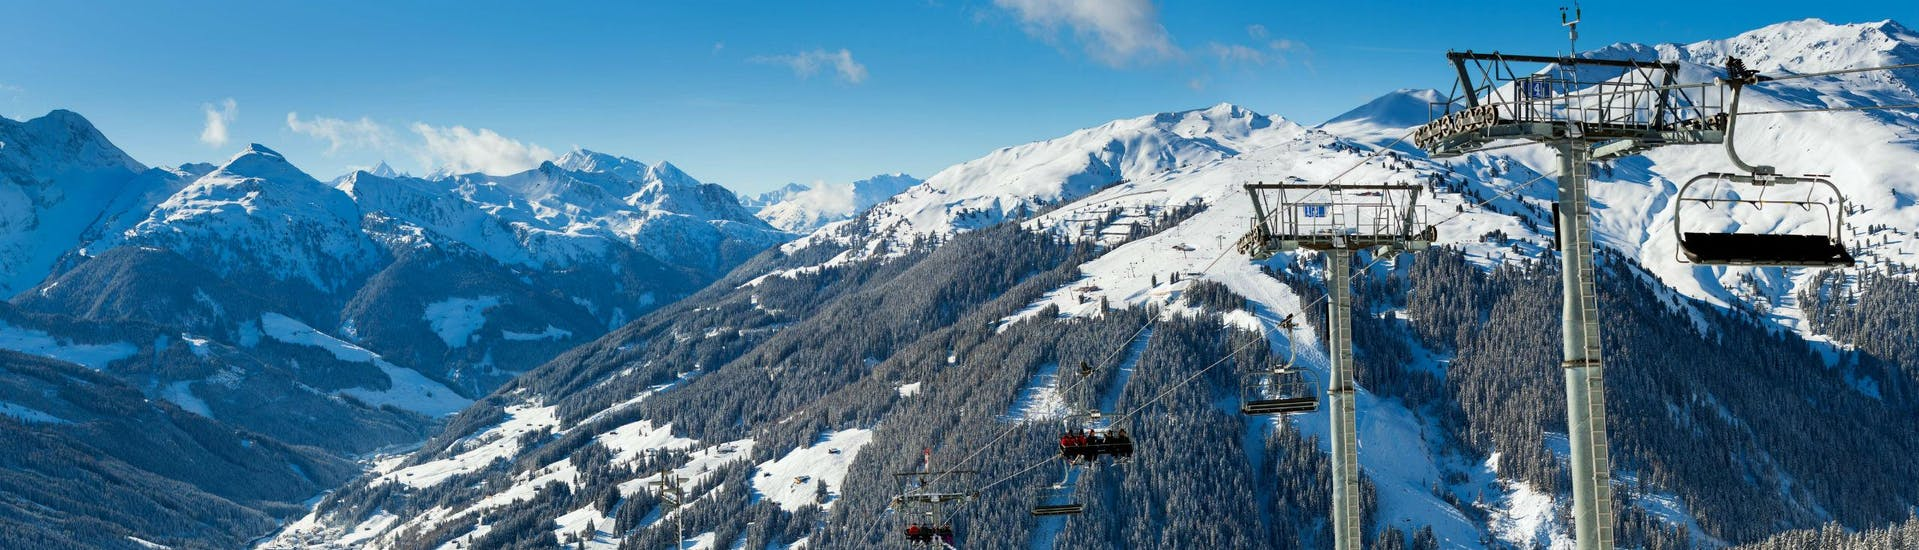 A panoramic view of the Zillertal Valley in which the local ski schools based in Zell am Ziller offer ski lessons for those who wish to learn to ski.